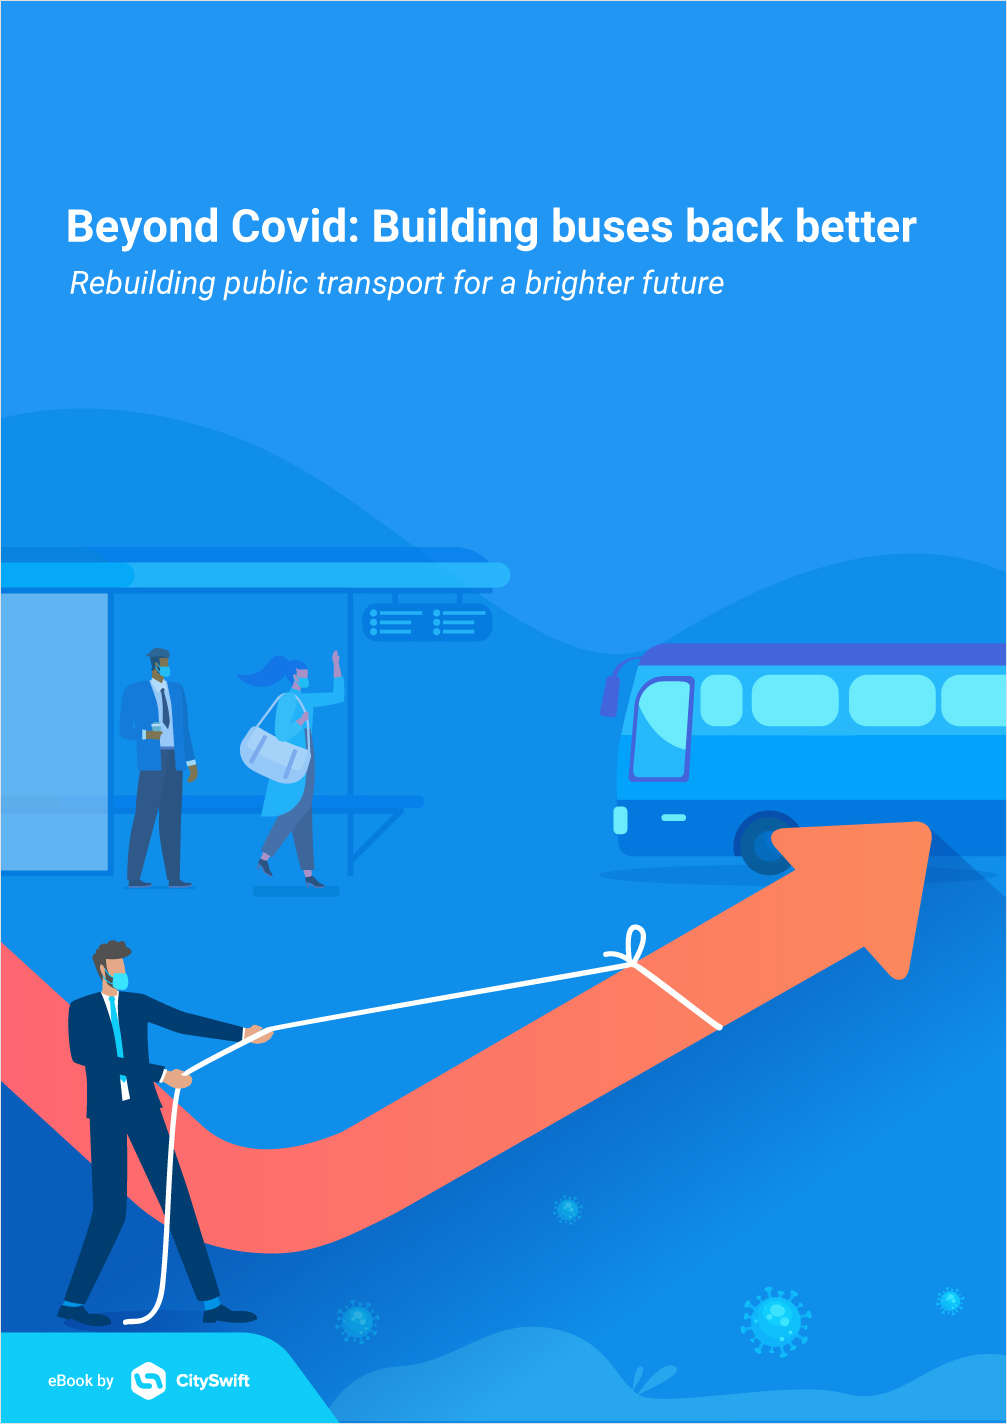 Beyond Covid: Building buses back better